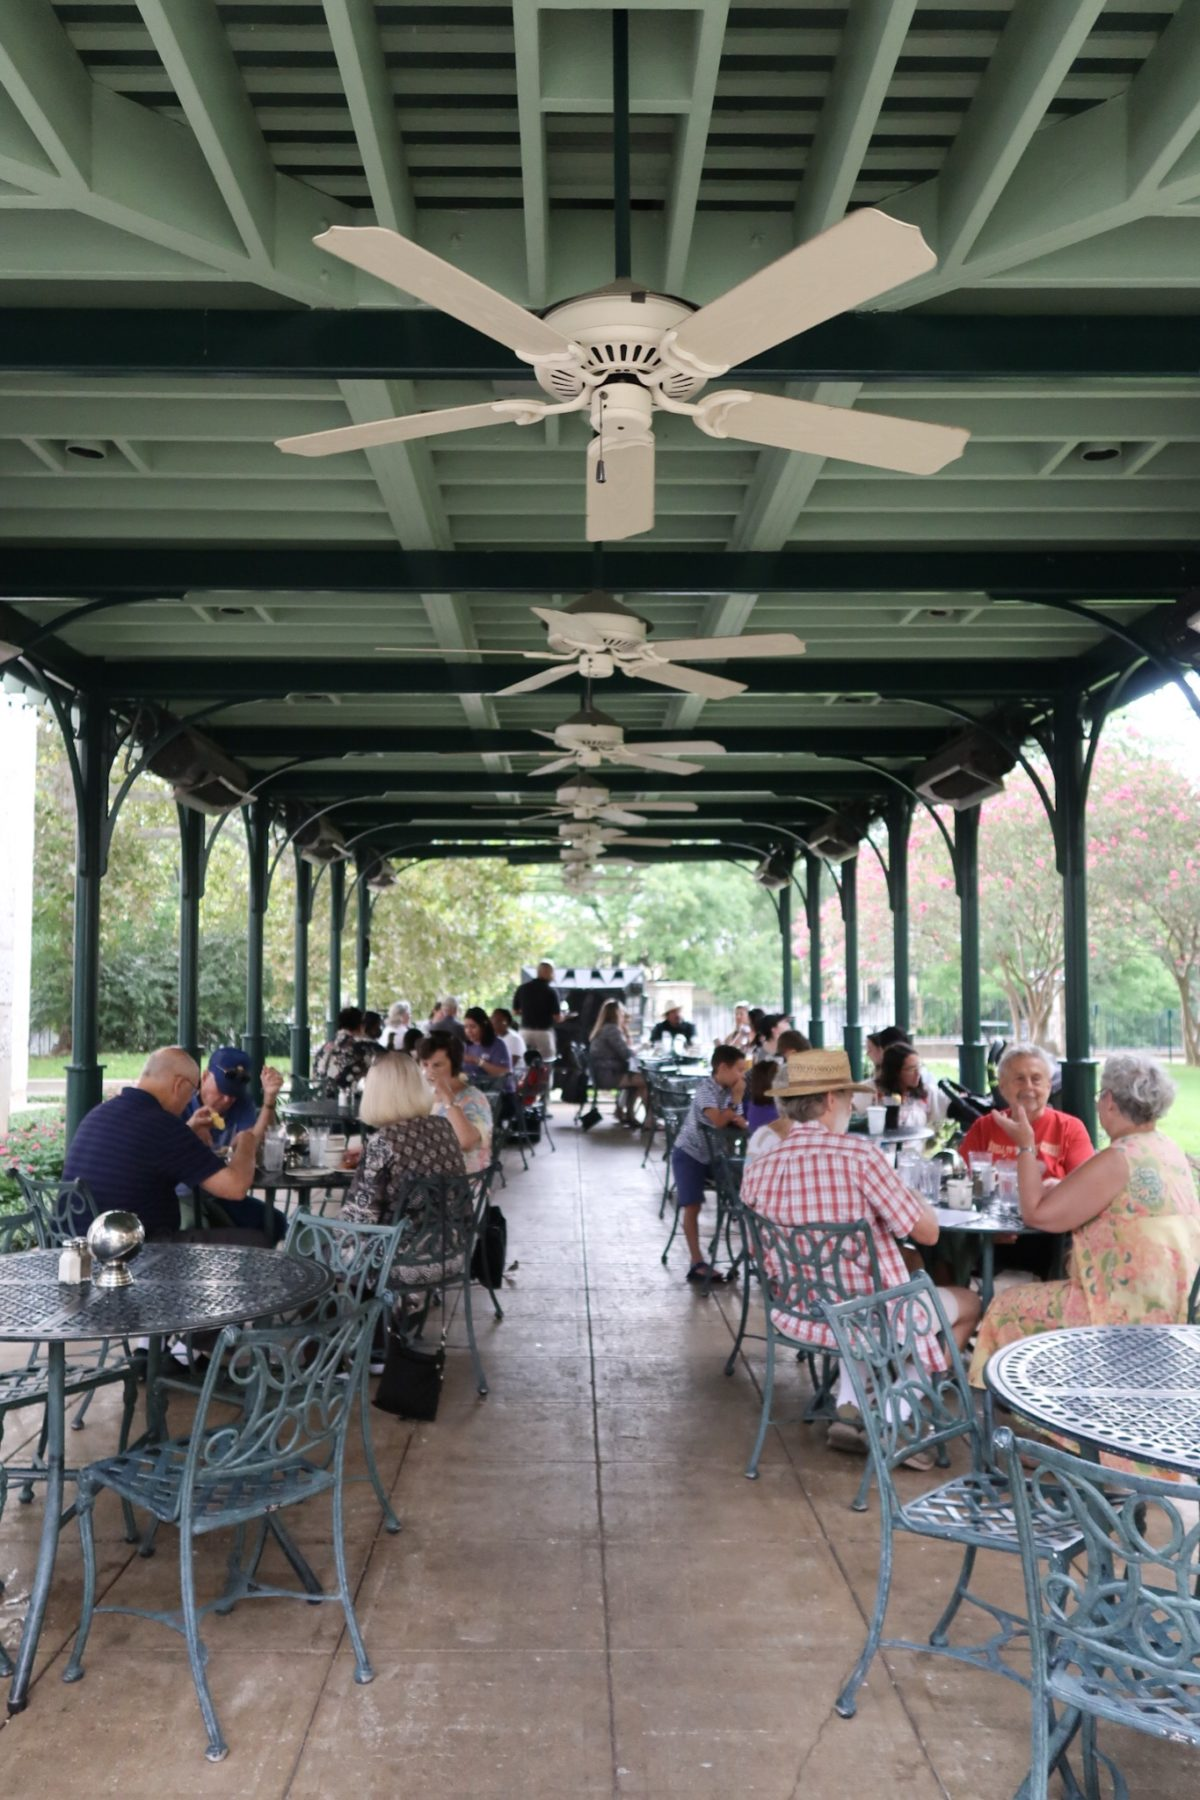 48 hours in San Antonio - eating lunch outside